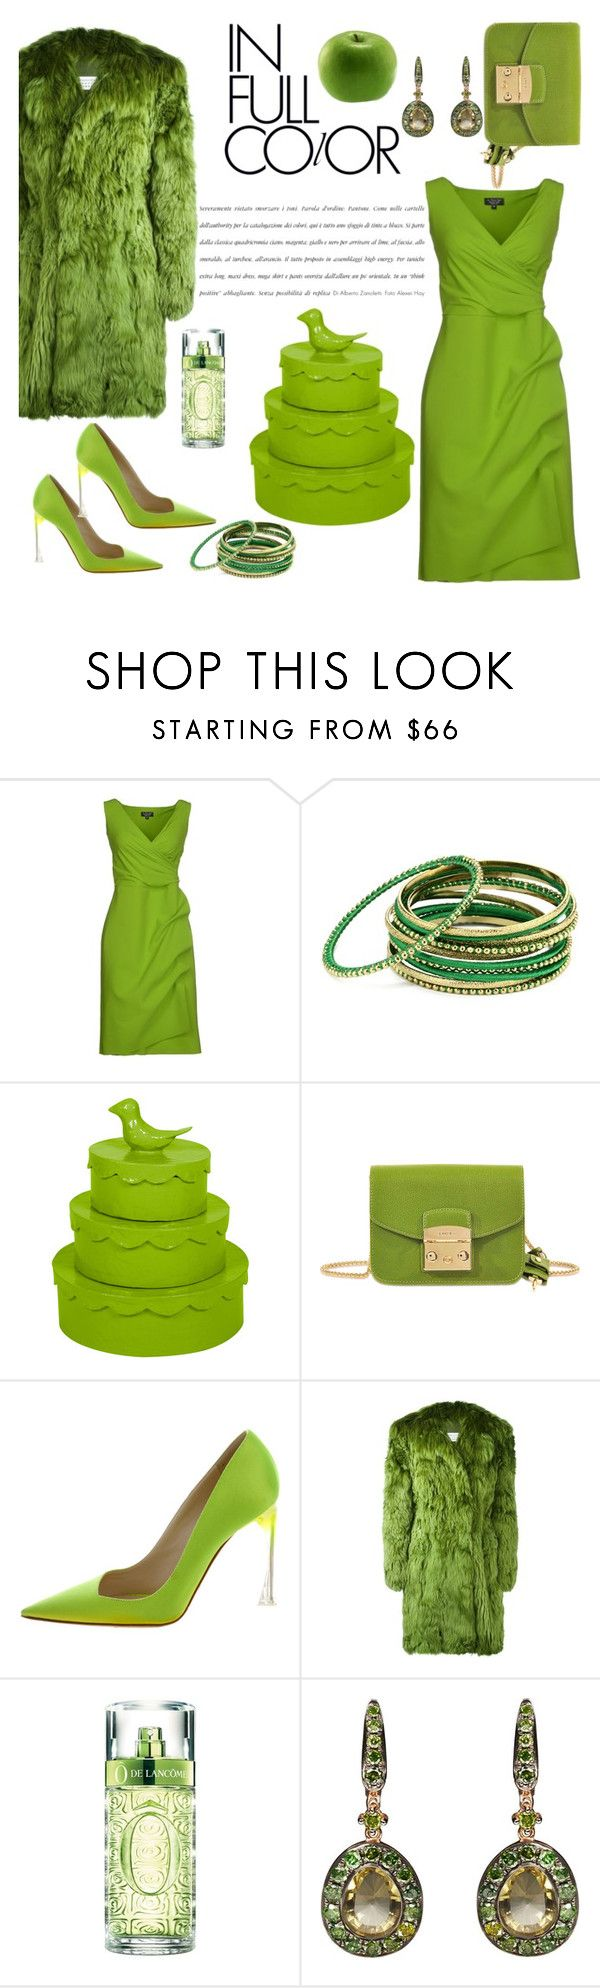 """What a Color"" by ahapplet ❤ liked on Polyvore featuring La Petite Robe di Chiara Boni, Amrita Singh, Stray Dog Designs, Furla, Christian Dior, Maison Margiela, Lancôme, Annoushka, GREEN and Monochromatic"